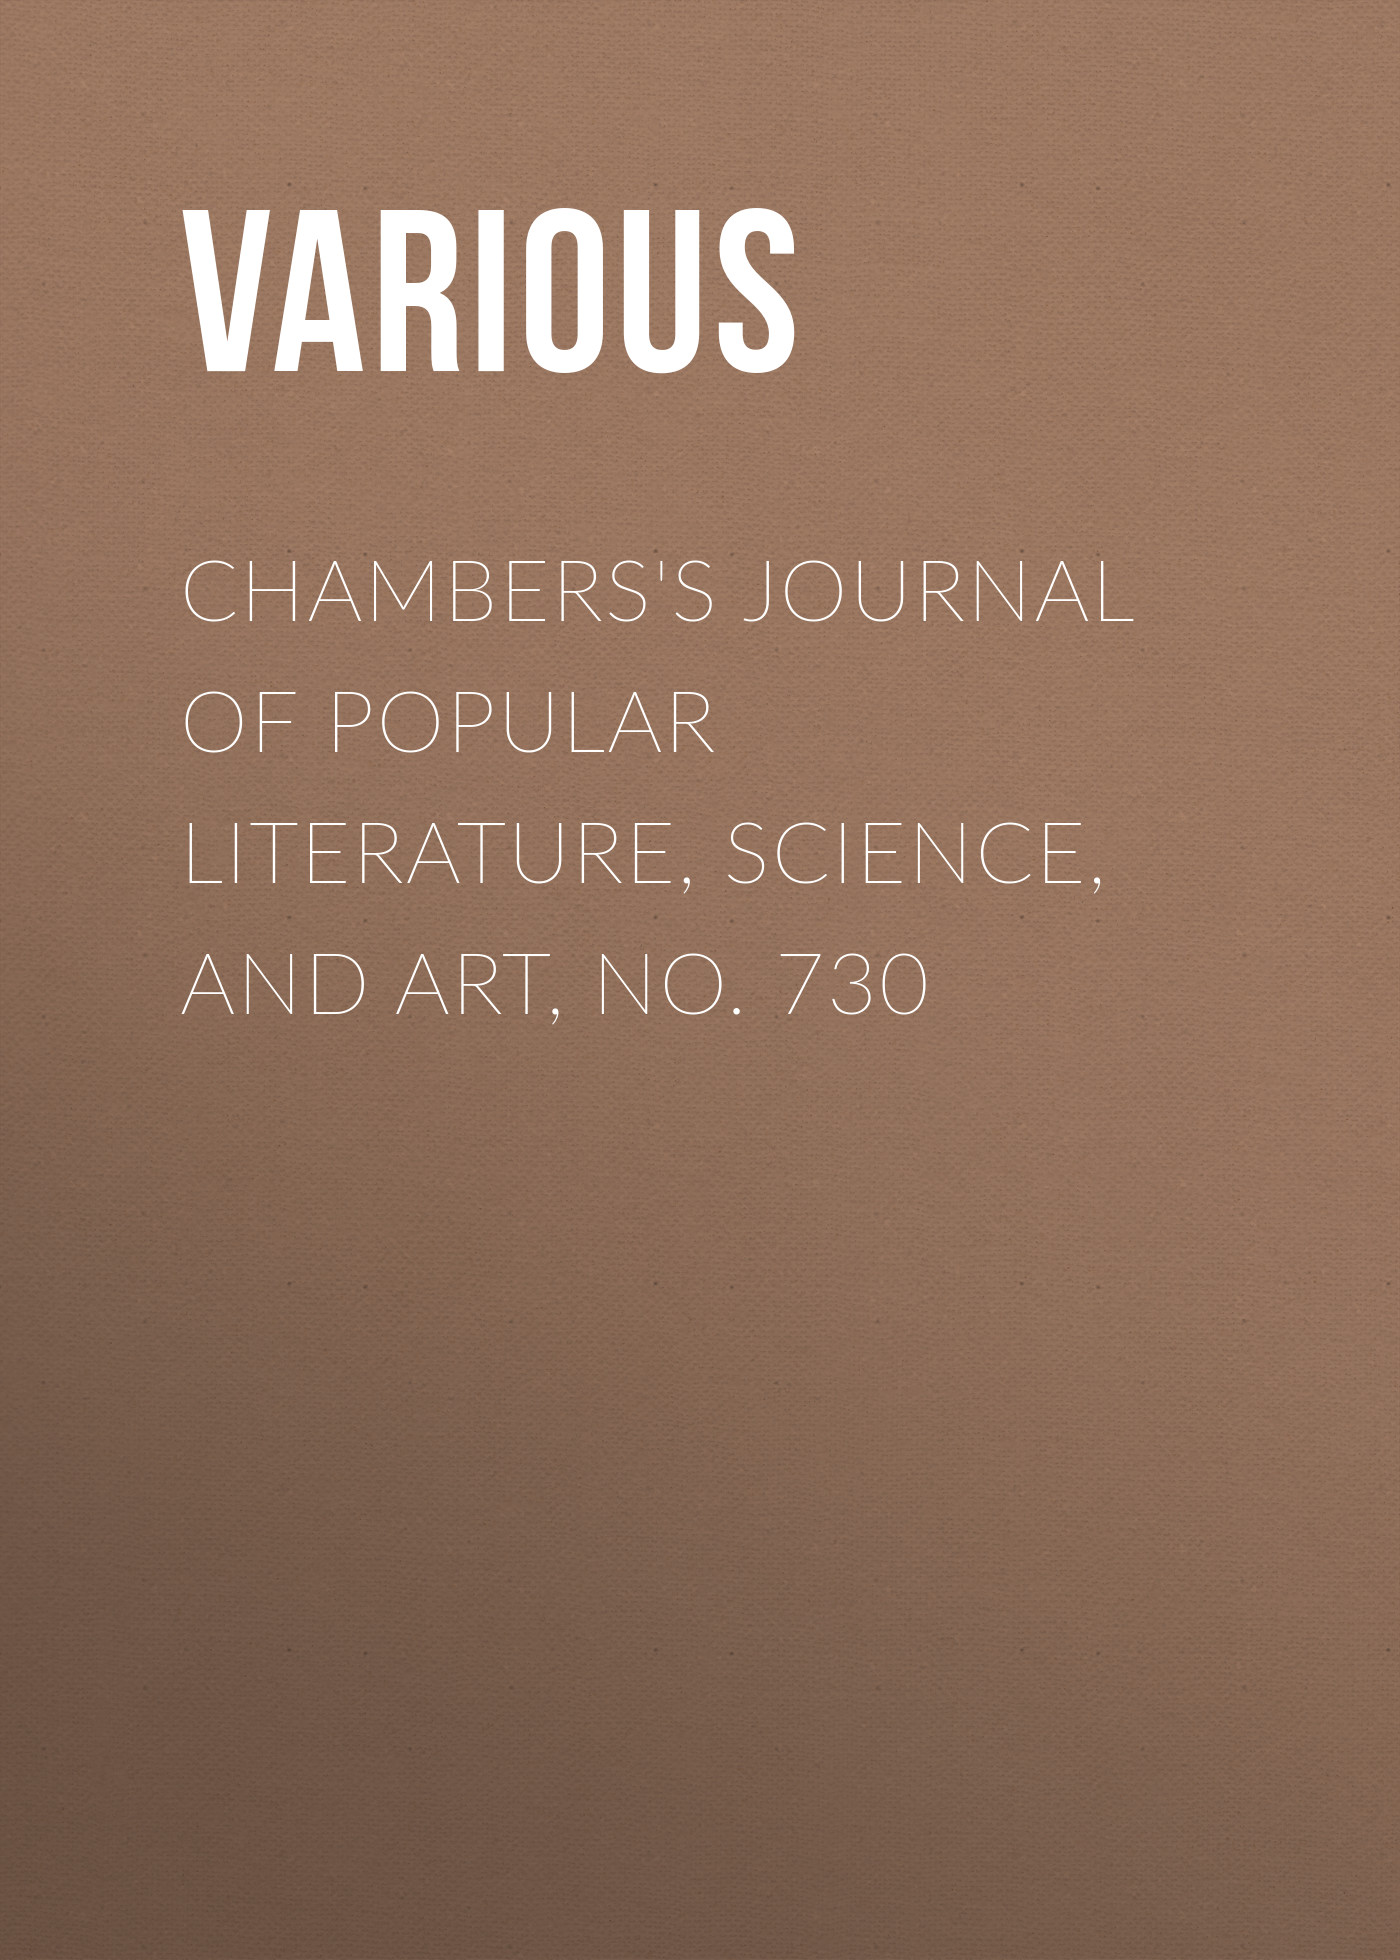 Chambers\'s Journal of Popular Literature, Science, and Art, No. 730 ( Various  )